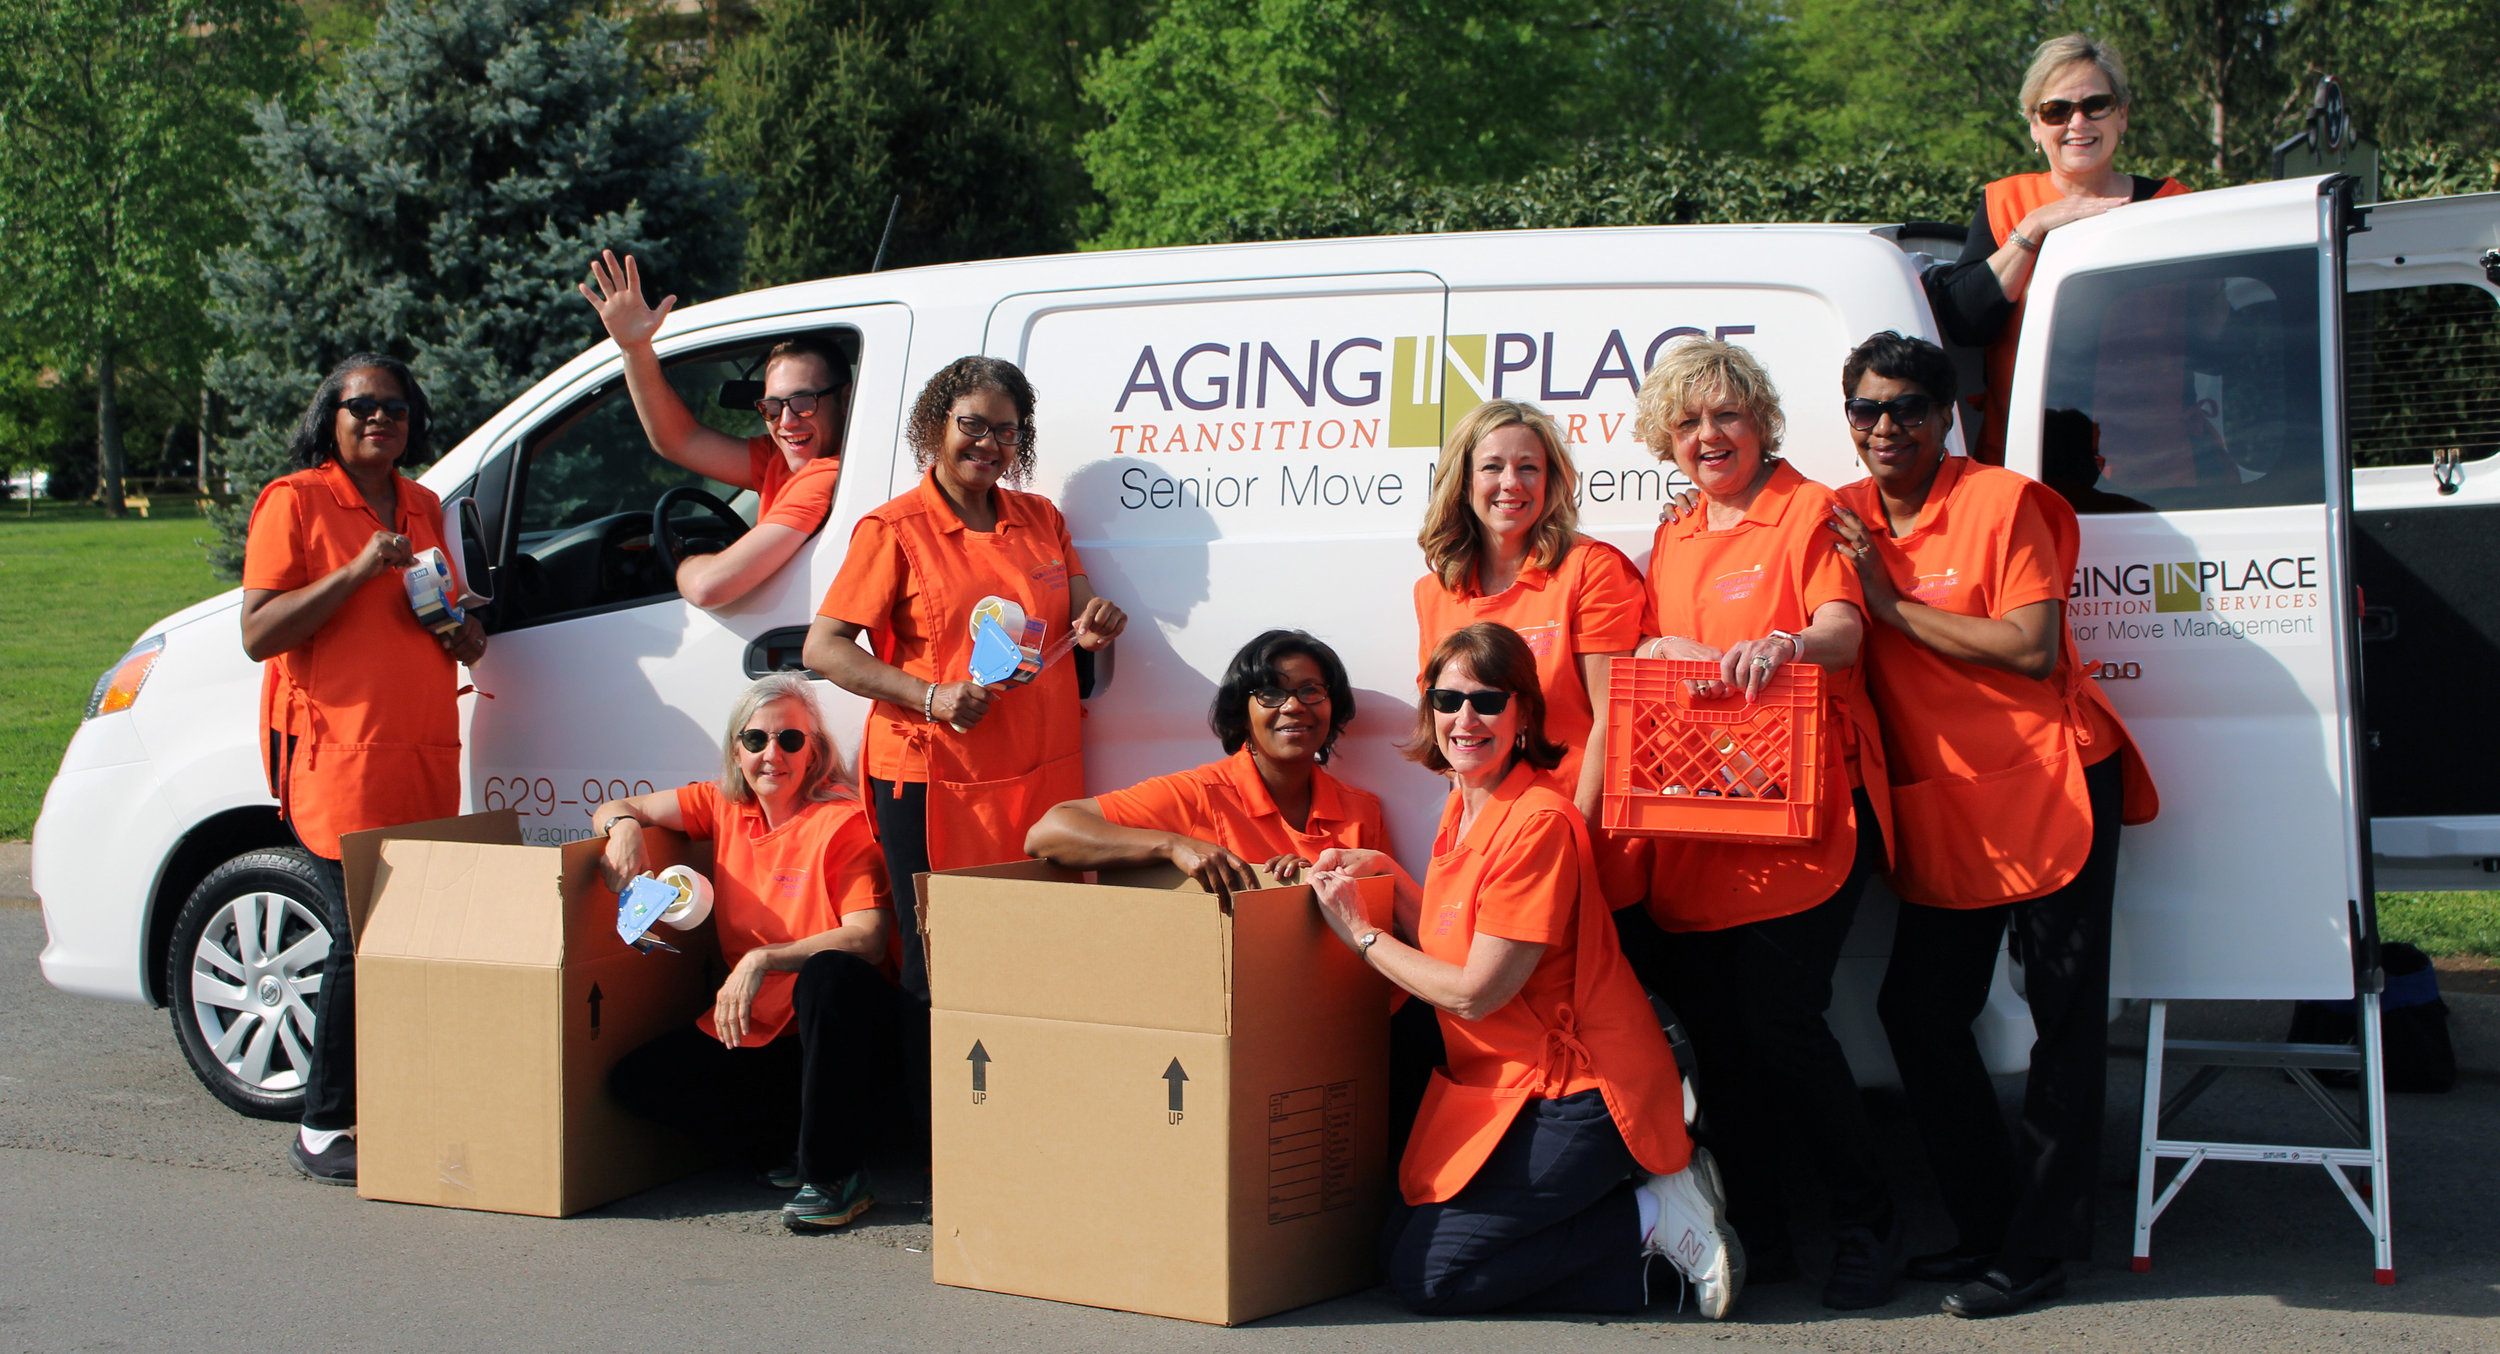 Sara Beth Warne, a member of the National Association of Senior Move Managers, helps your current home or new home meet your changing needs. You don't have to be older to engage Aging in Place services.